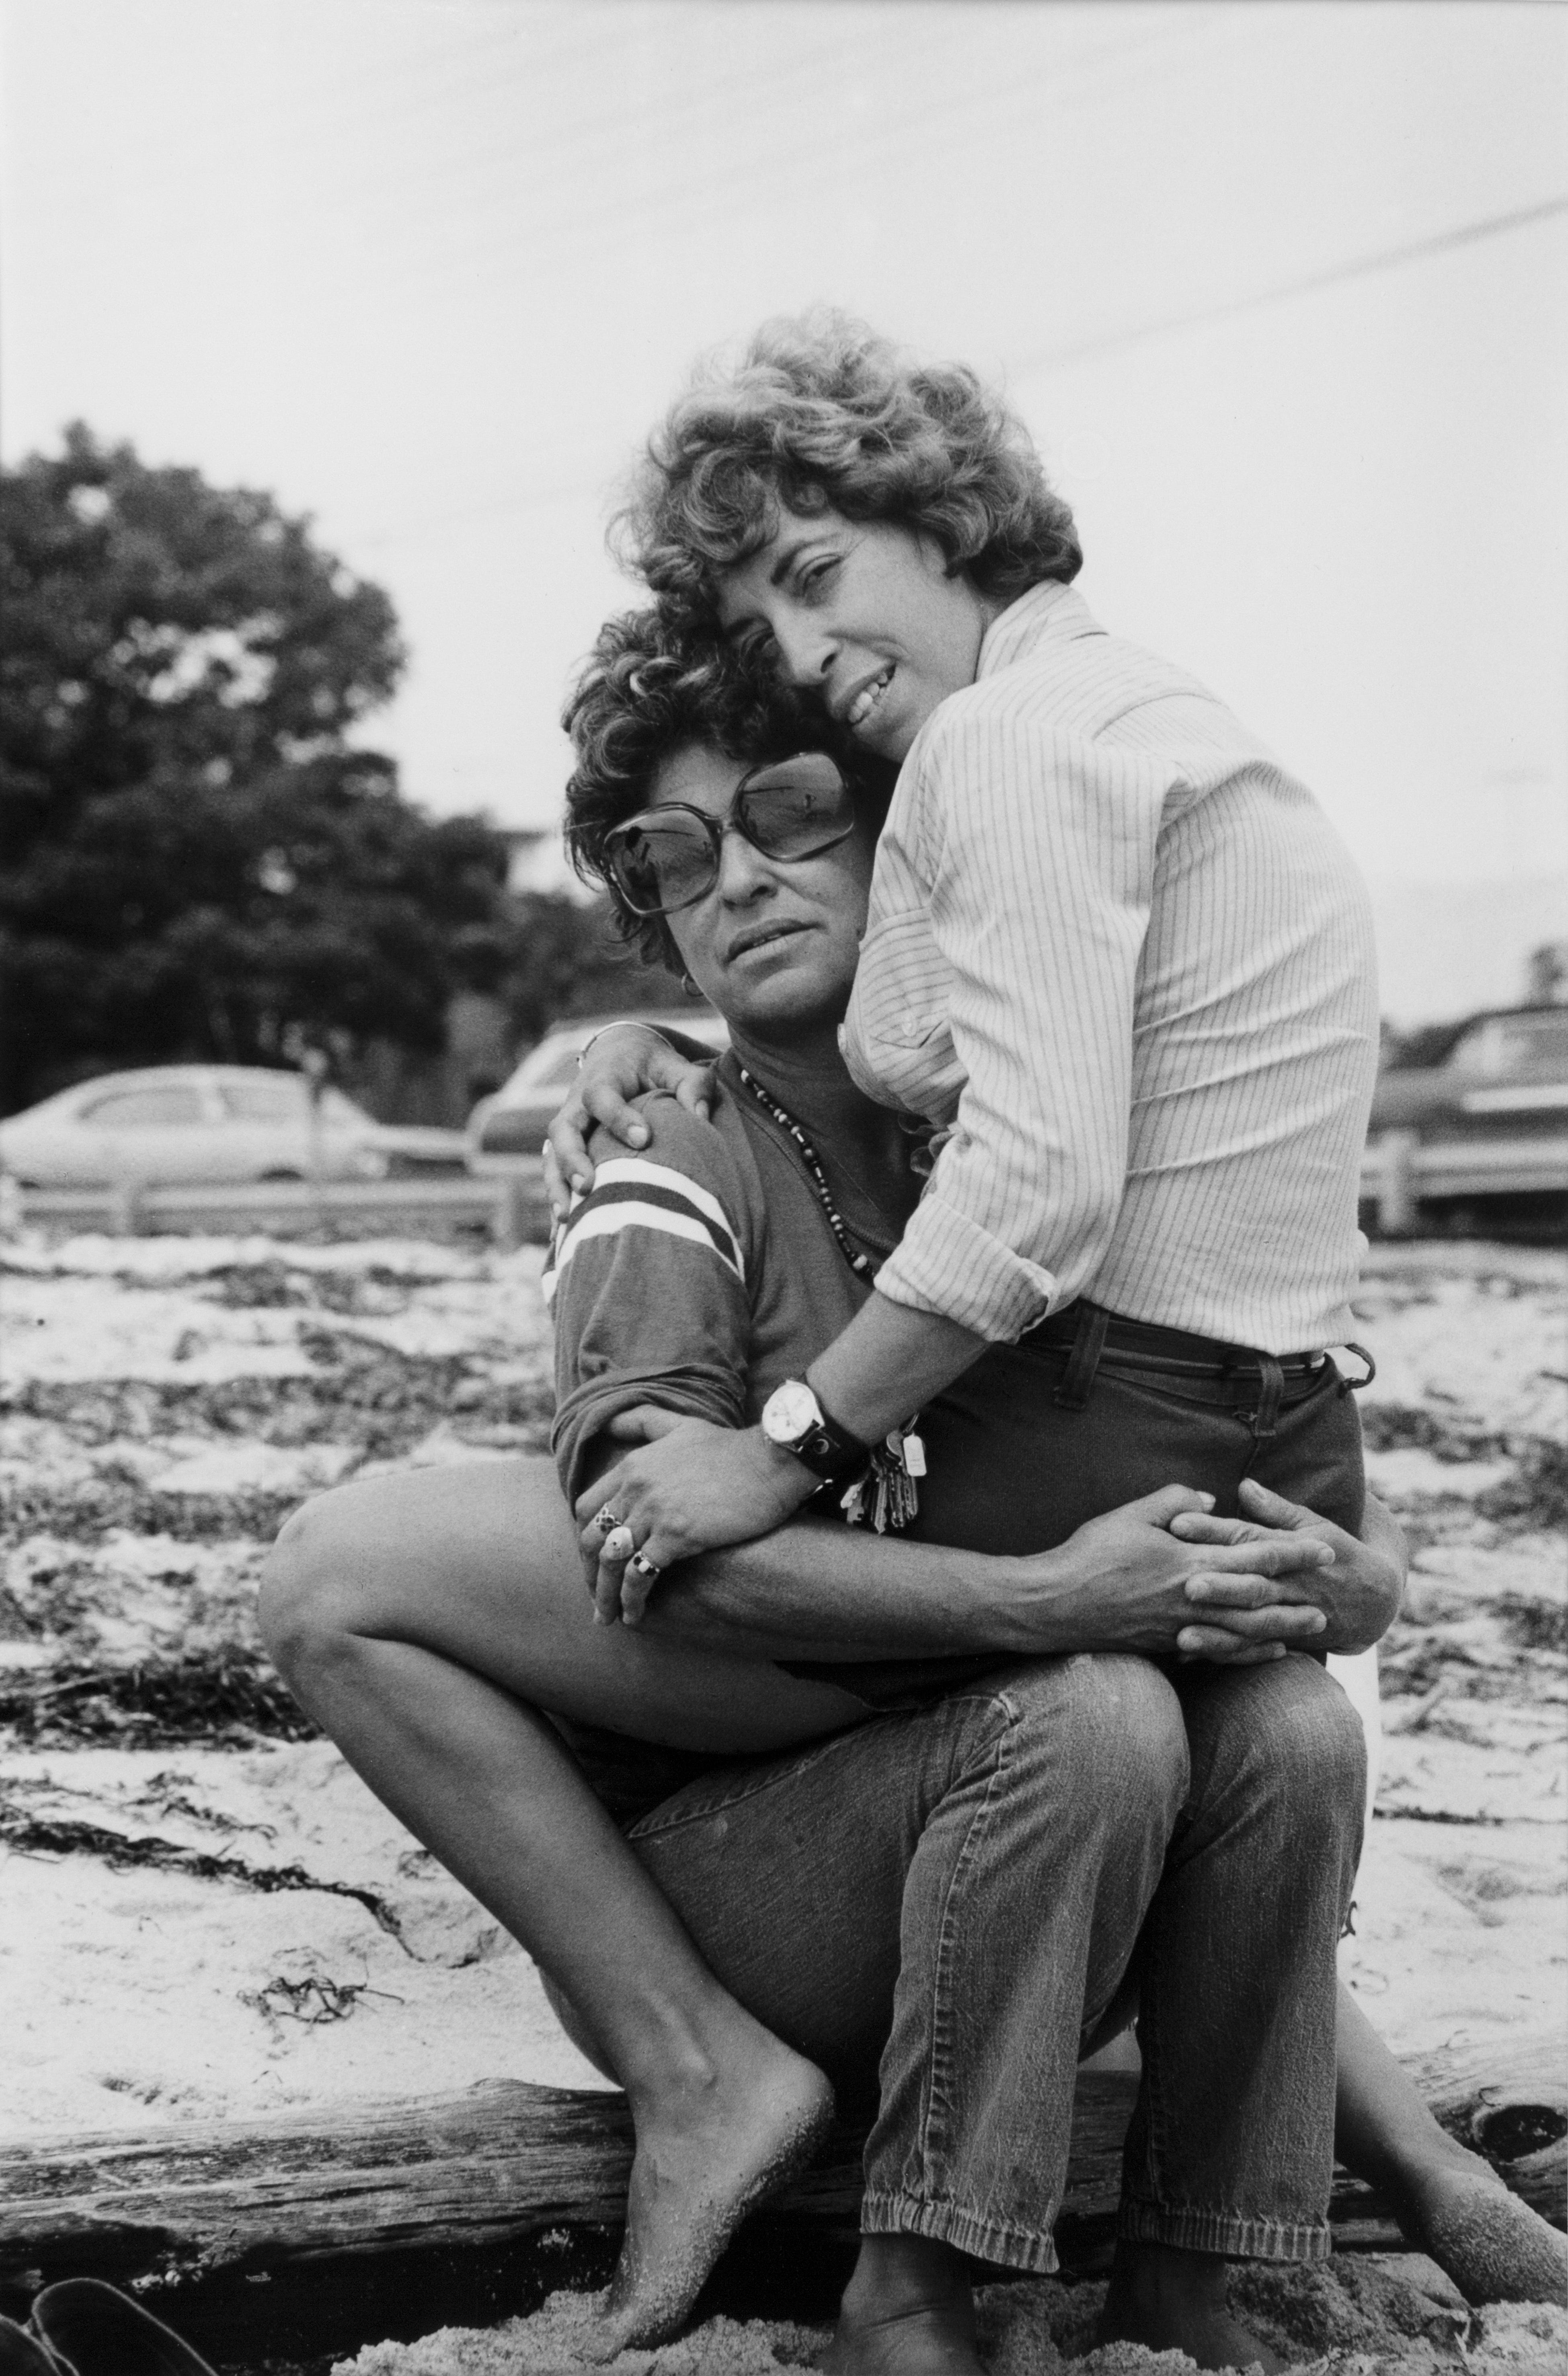 """""""Helaine on her girlfriend's lap, Provincetown,"""" 1974, is on view as part of the photography  exhibition """"Donna Gottschalk: Brave, Beautiful Outlaws,"""" on view at the Leslie-Lohman Museum until March 17, 2019."""